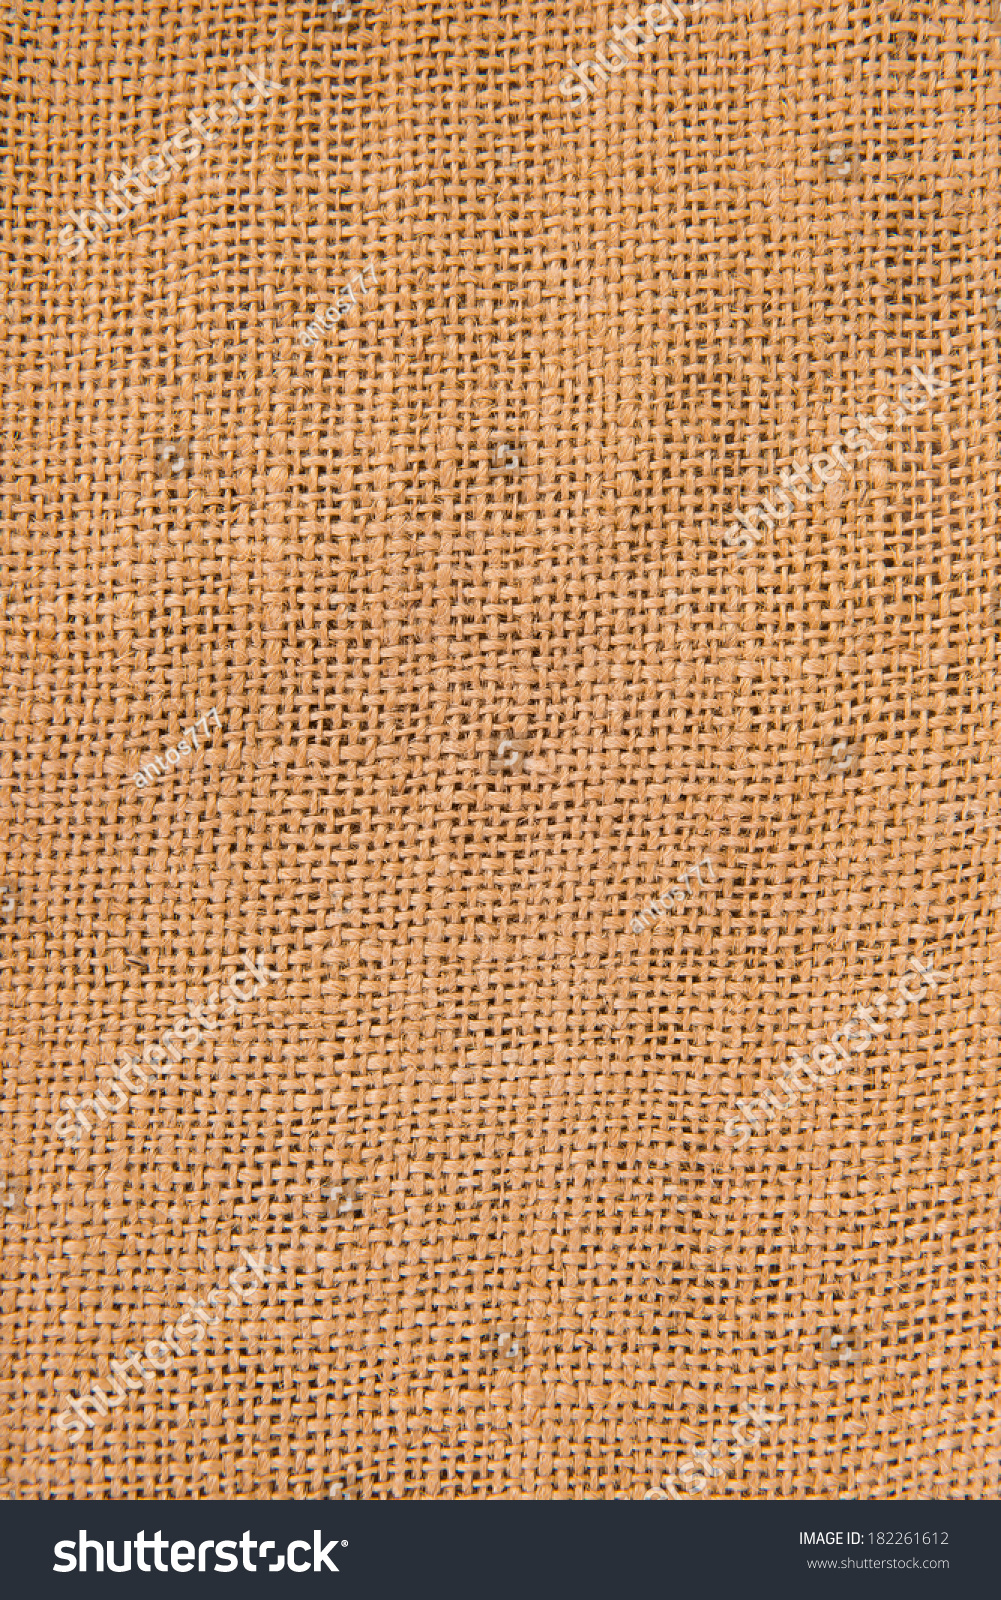 Brown Fabric Texture Background Stock Photo 182261612 - Shutterstock